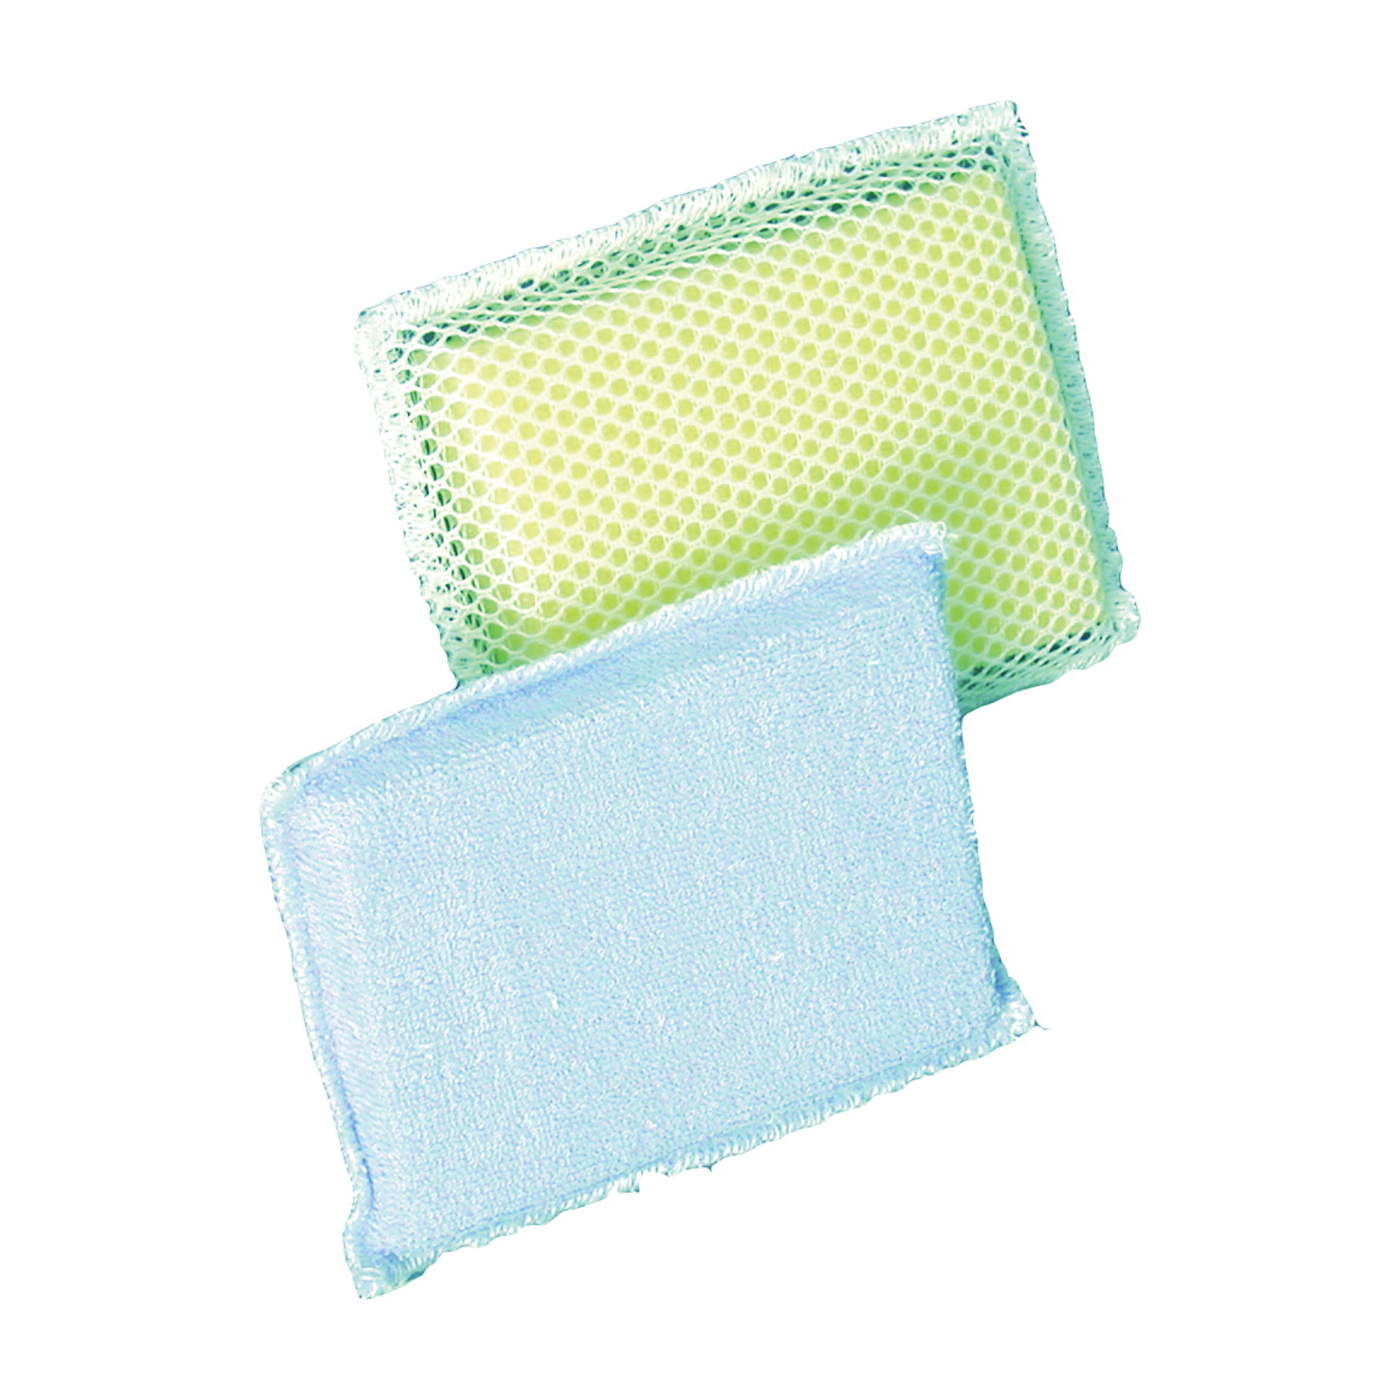 Picture of BIRDWELL 353-24 Scouring Sponge, 6-1/4 in L, 4 in W, 3/4 in Thick, Terry Cloth